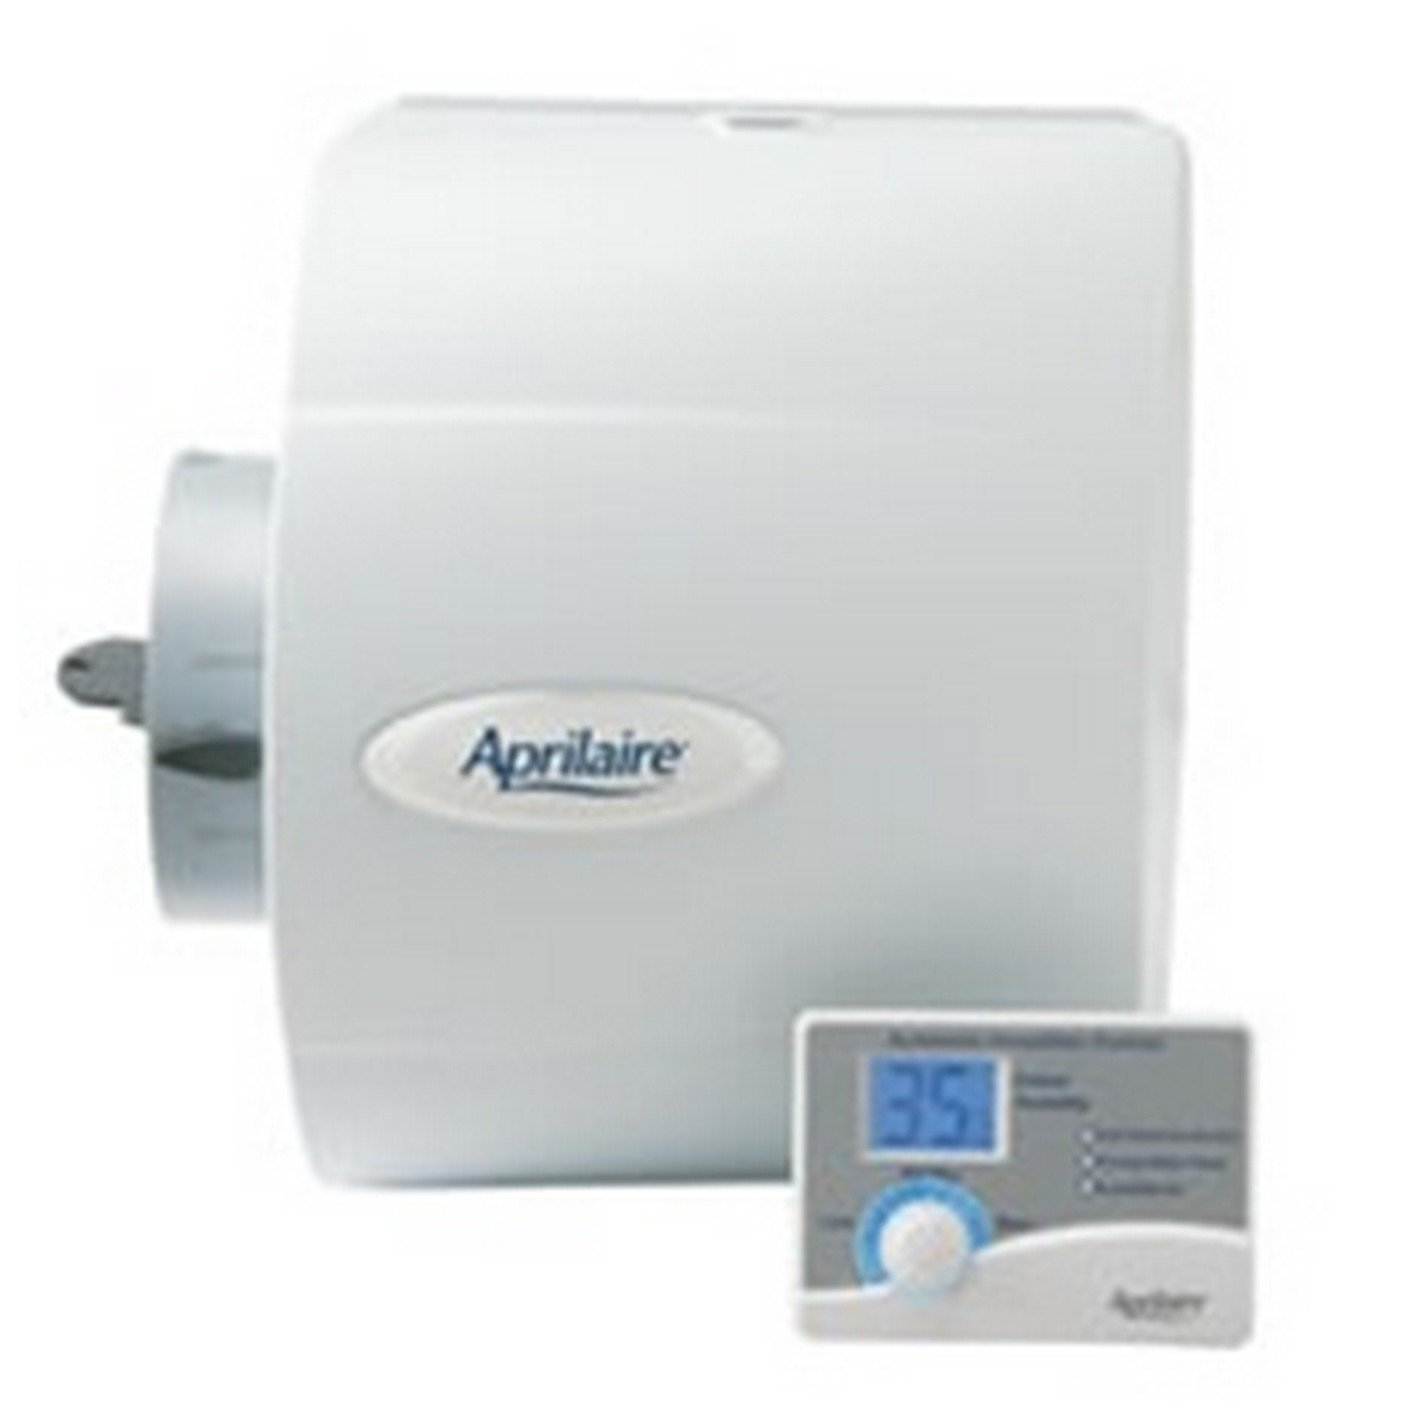 furnace humidifiers reviews Aprilaire 600 Humidifier Whole House  #3B6390